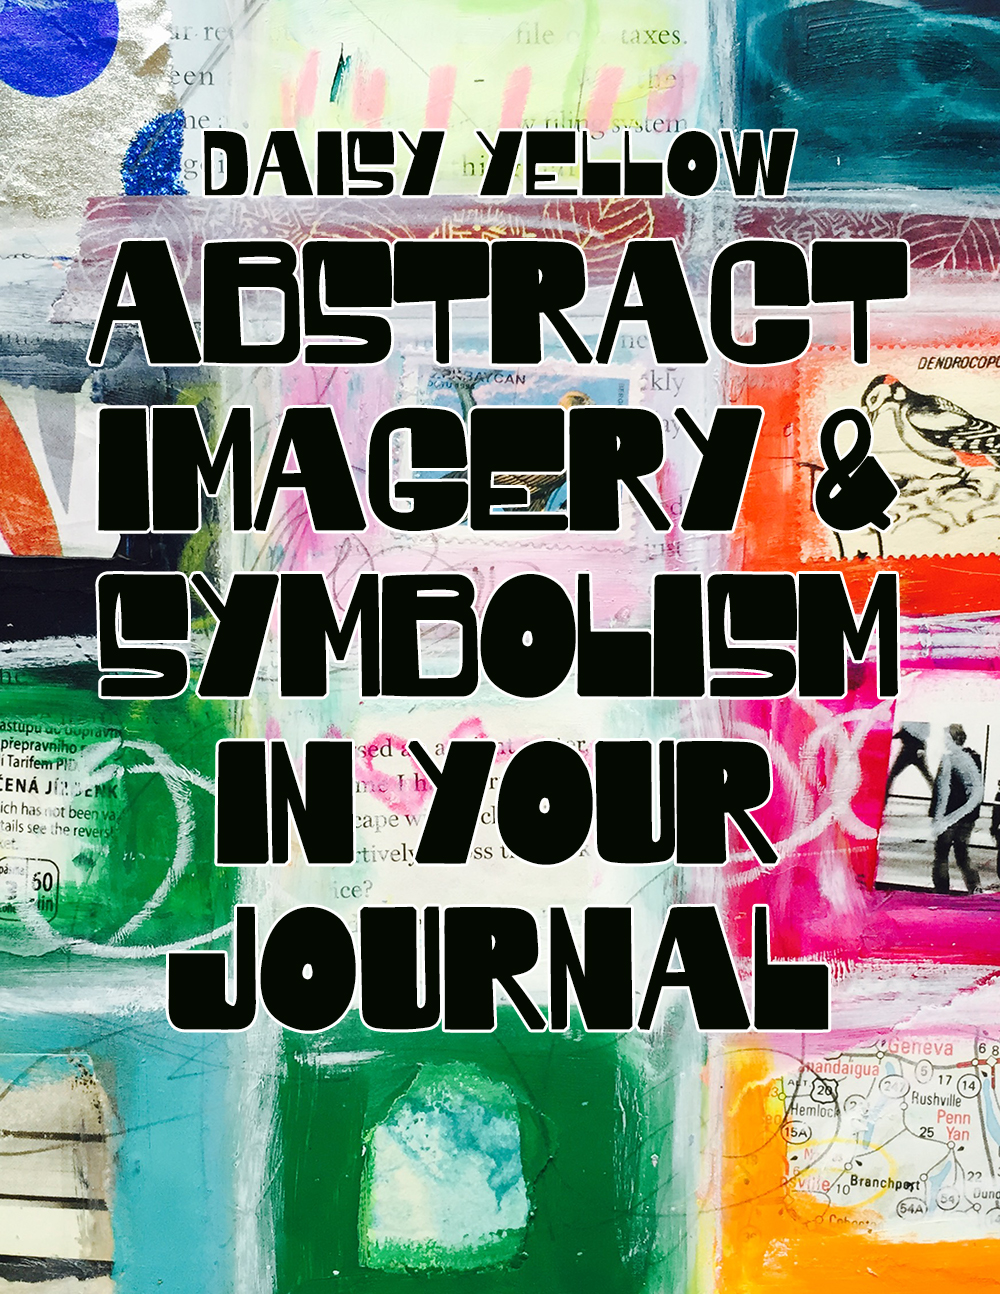 Abstract Imagery Symbolism In Art Journals